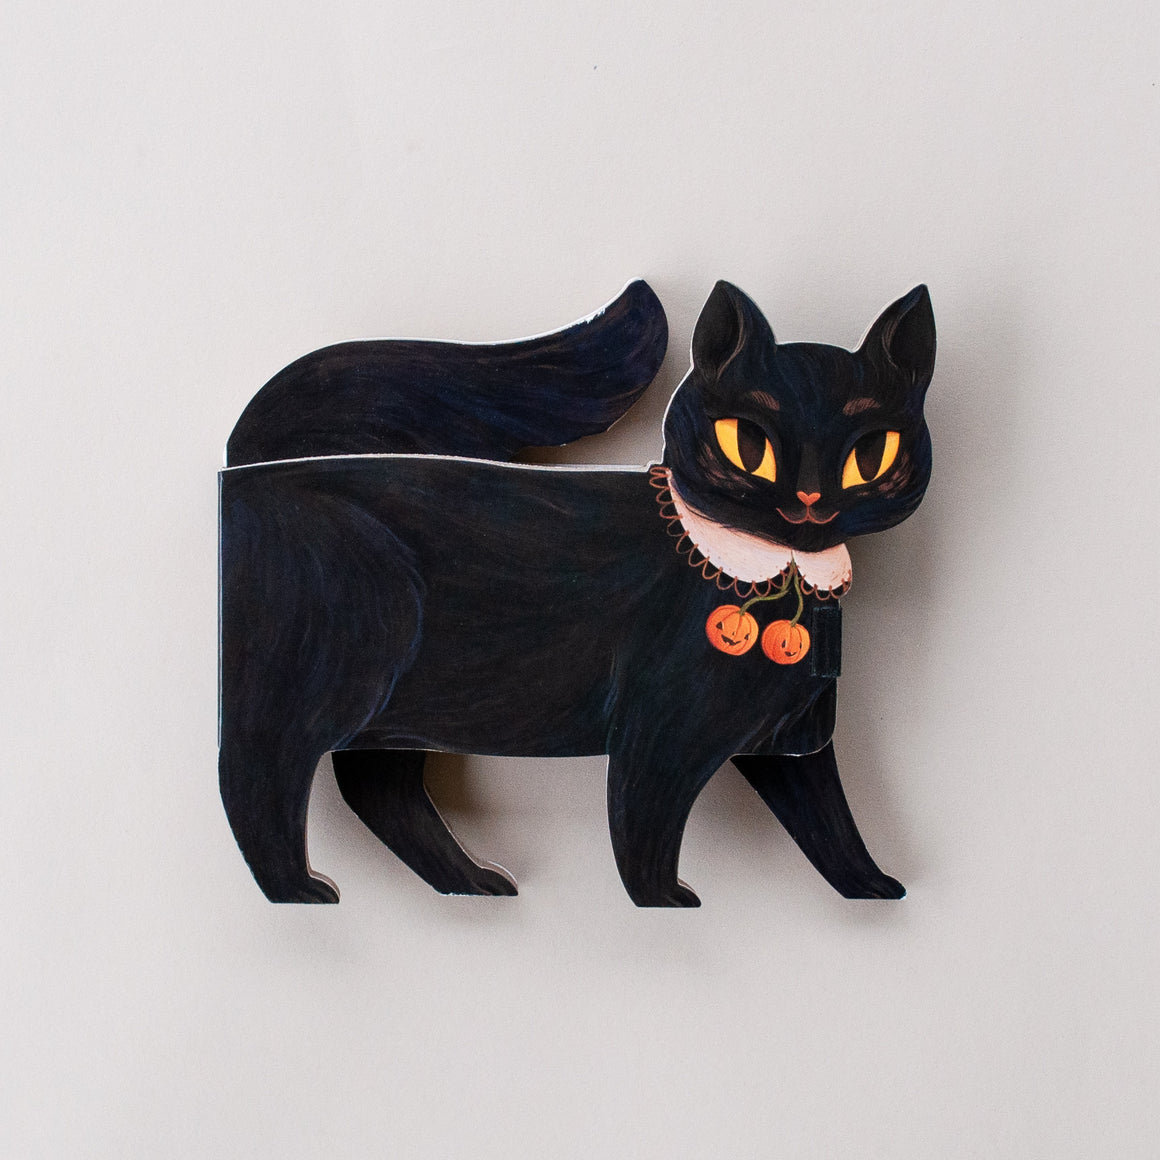 One Black Cat